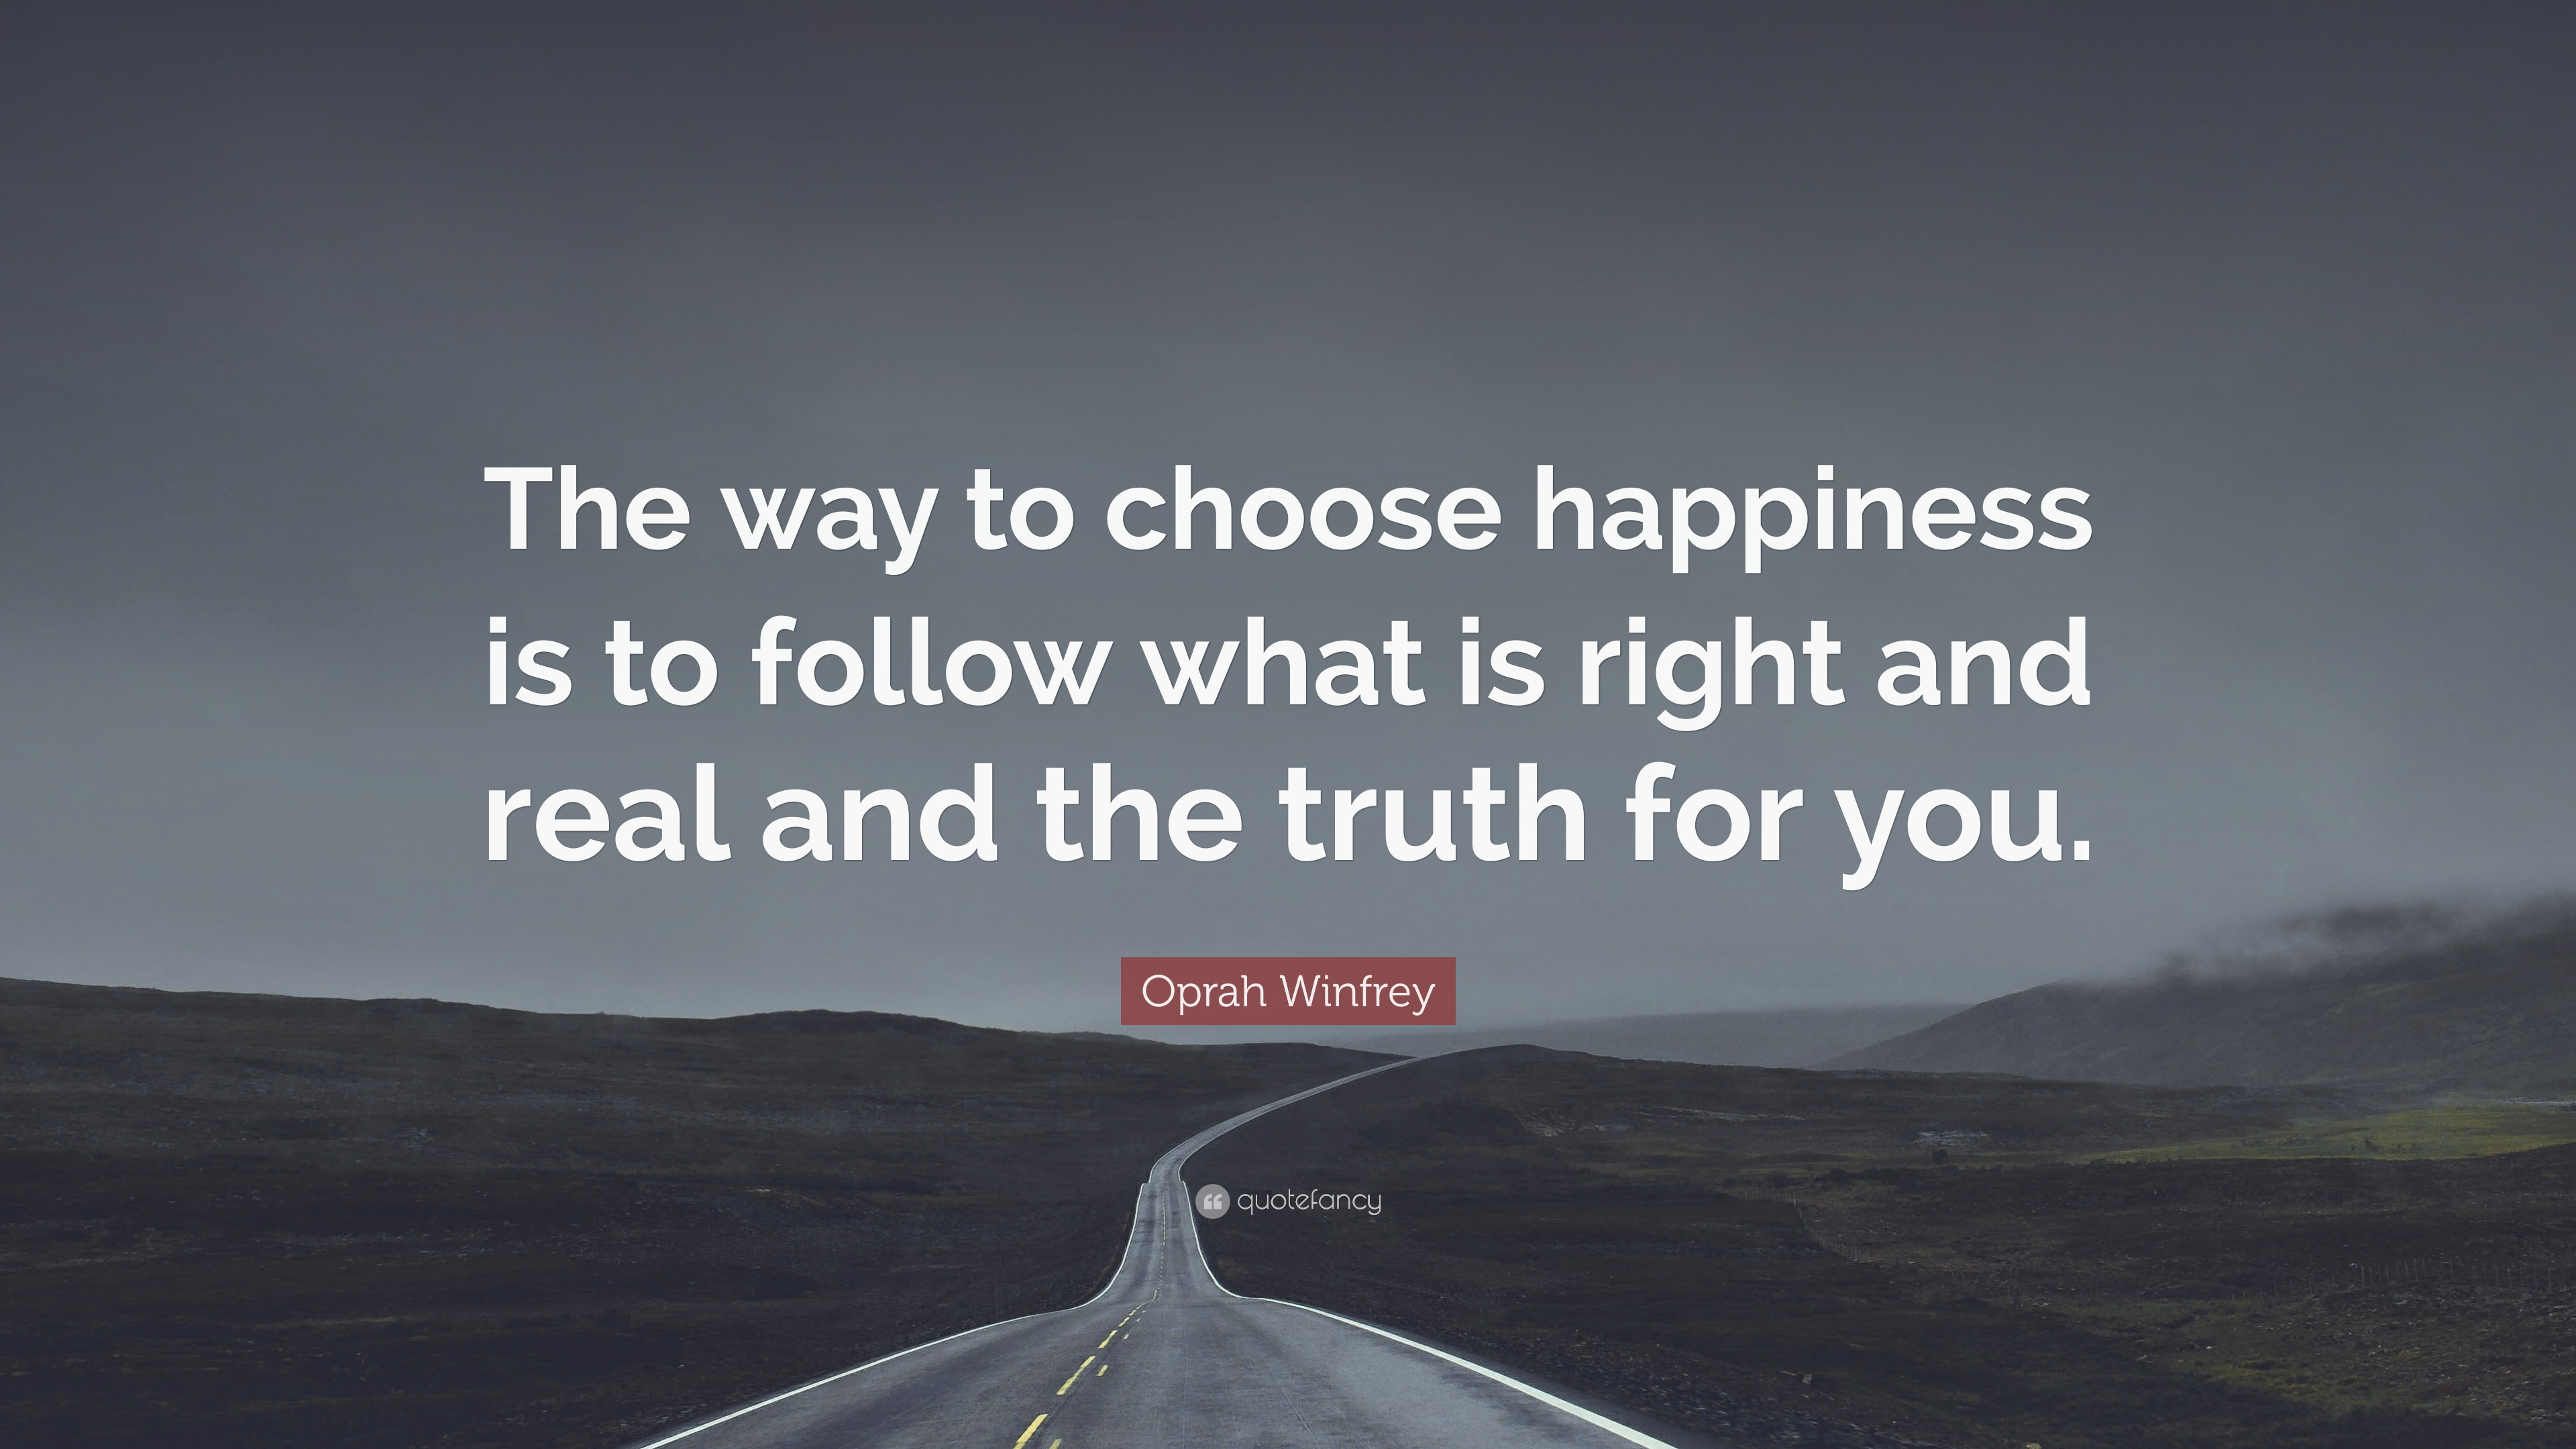 Oprah Winfrey Quote: U201cThe Way To Choose Happiness Is To Follow What Is Right